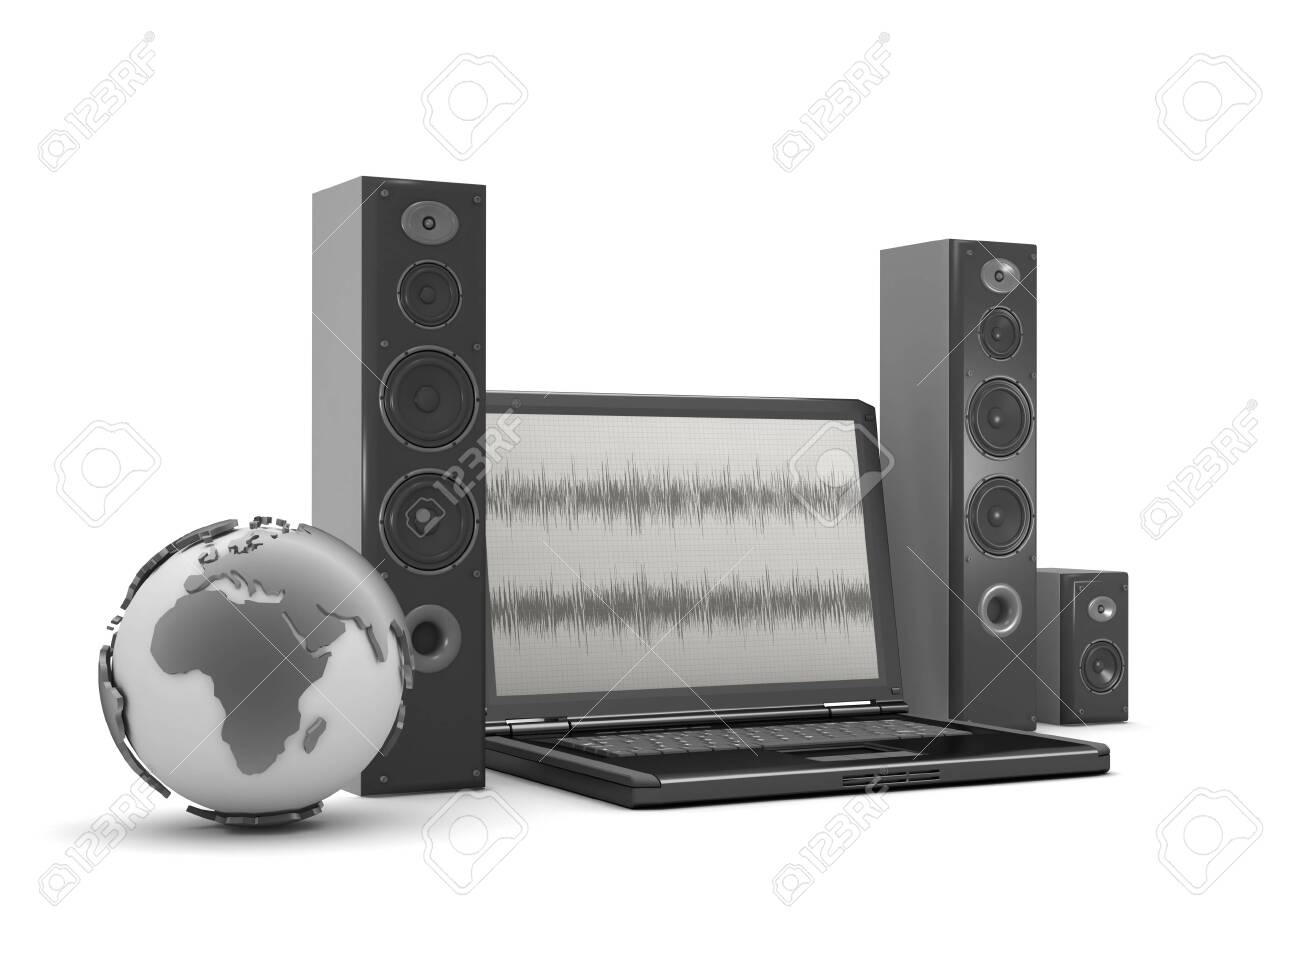 Earth globe, laptop with audio diagram on screen and speakers Stock Photo - 26092874